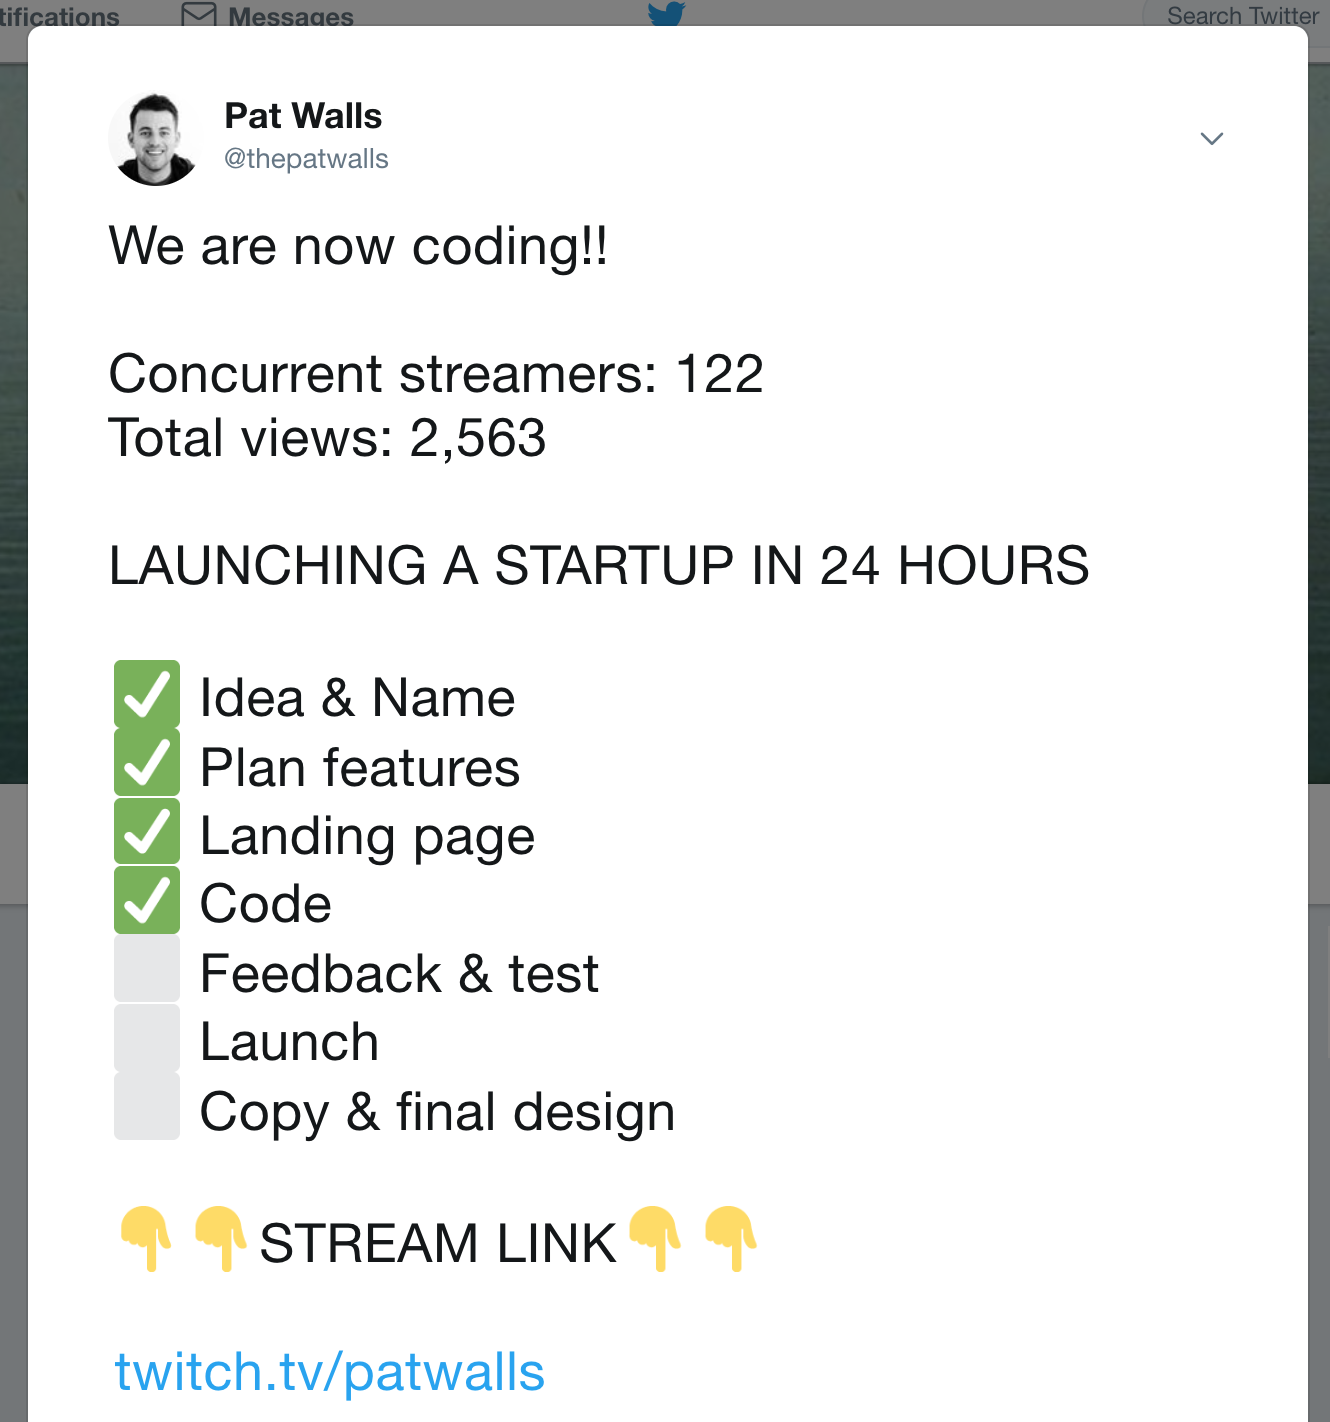 Share your stream progress with your audience on Twitter